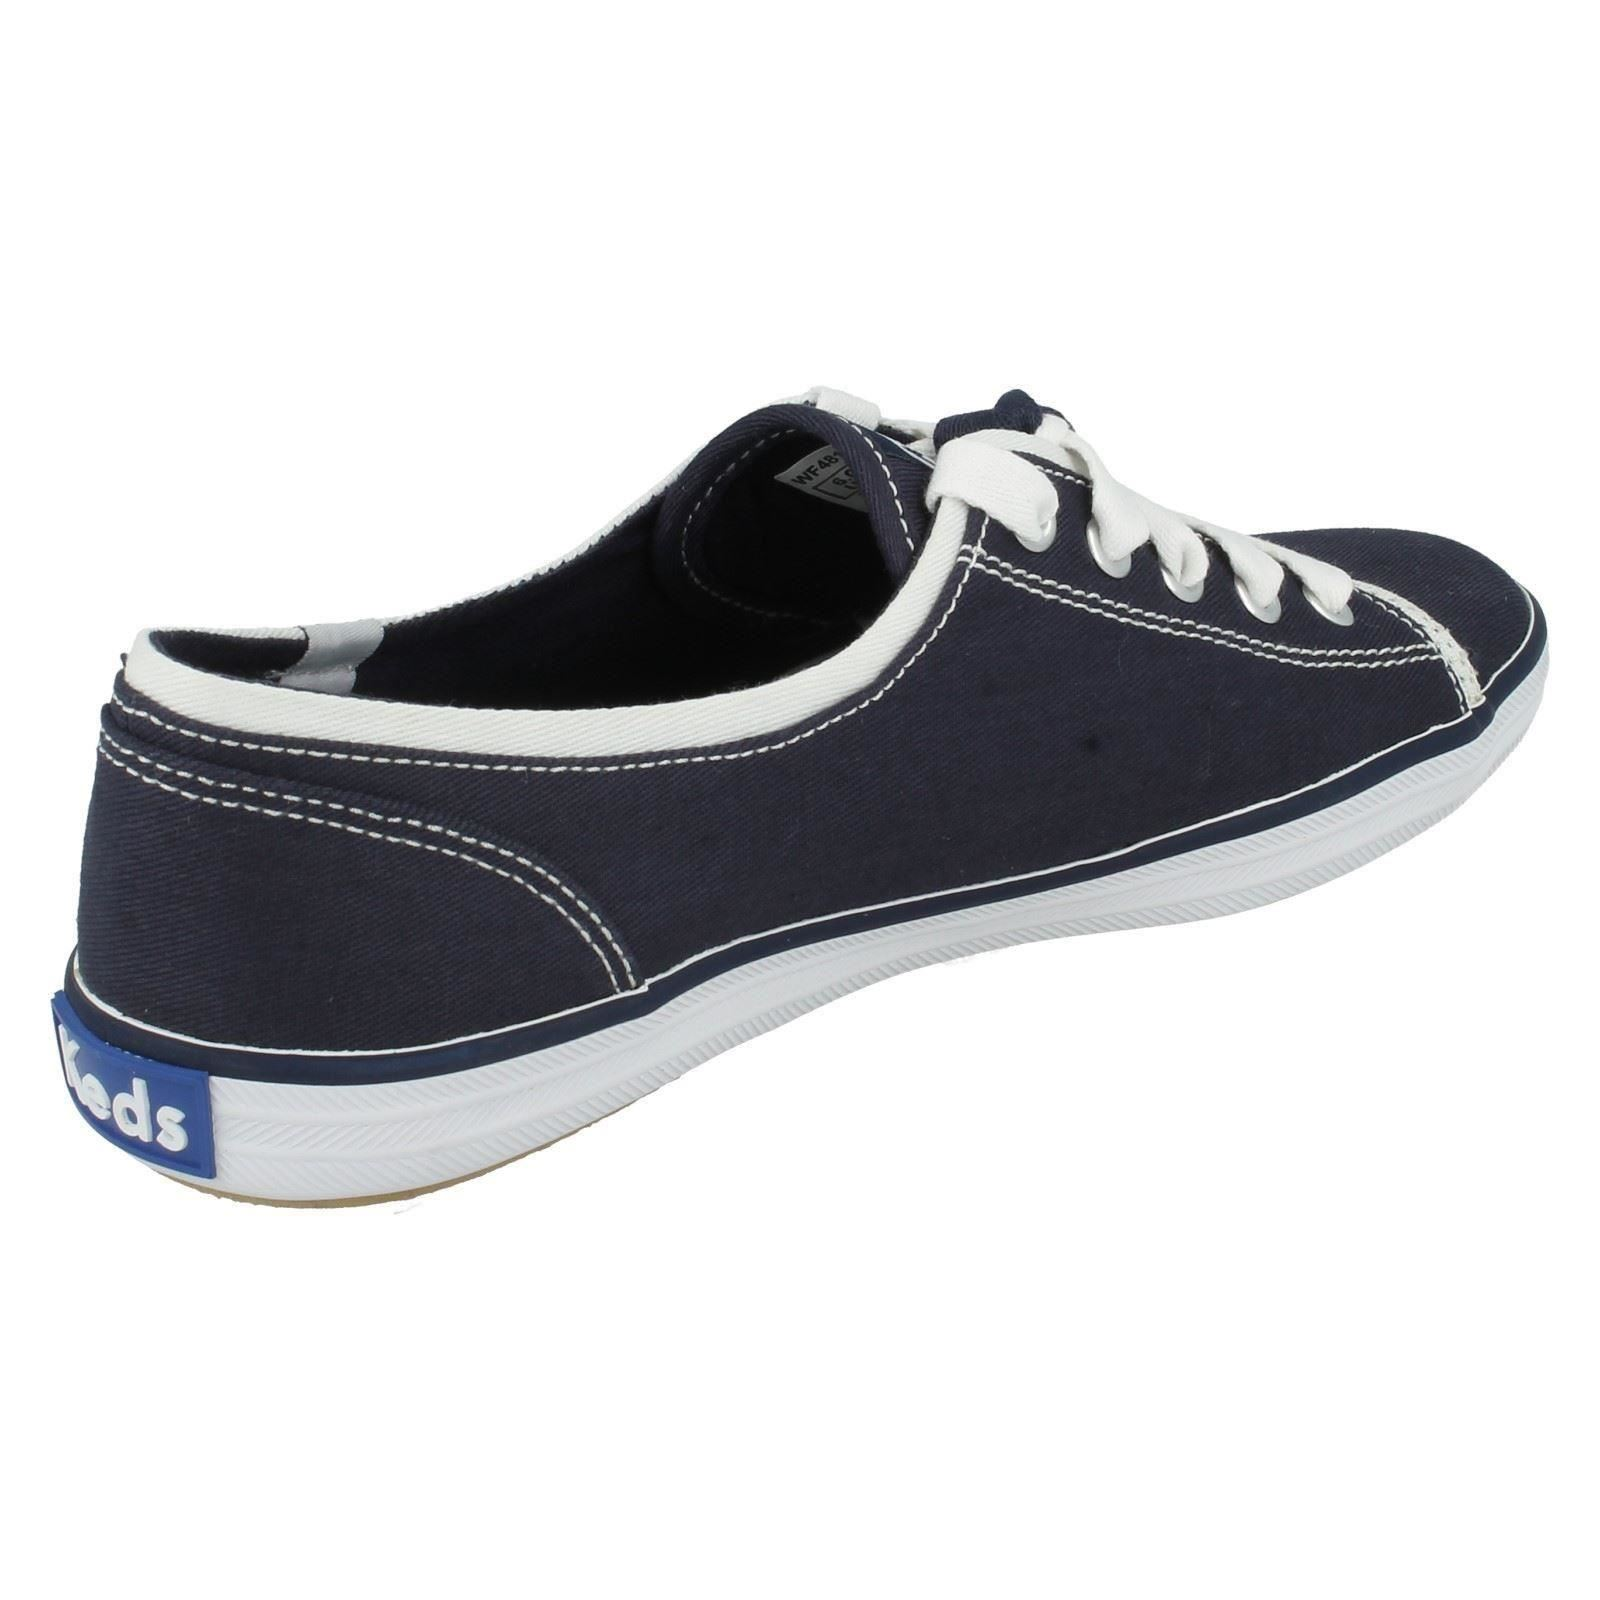 keds canvas shoes style rally ebay